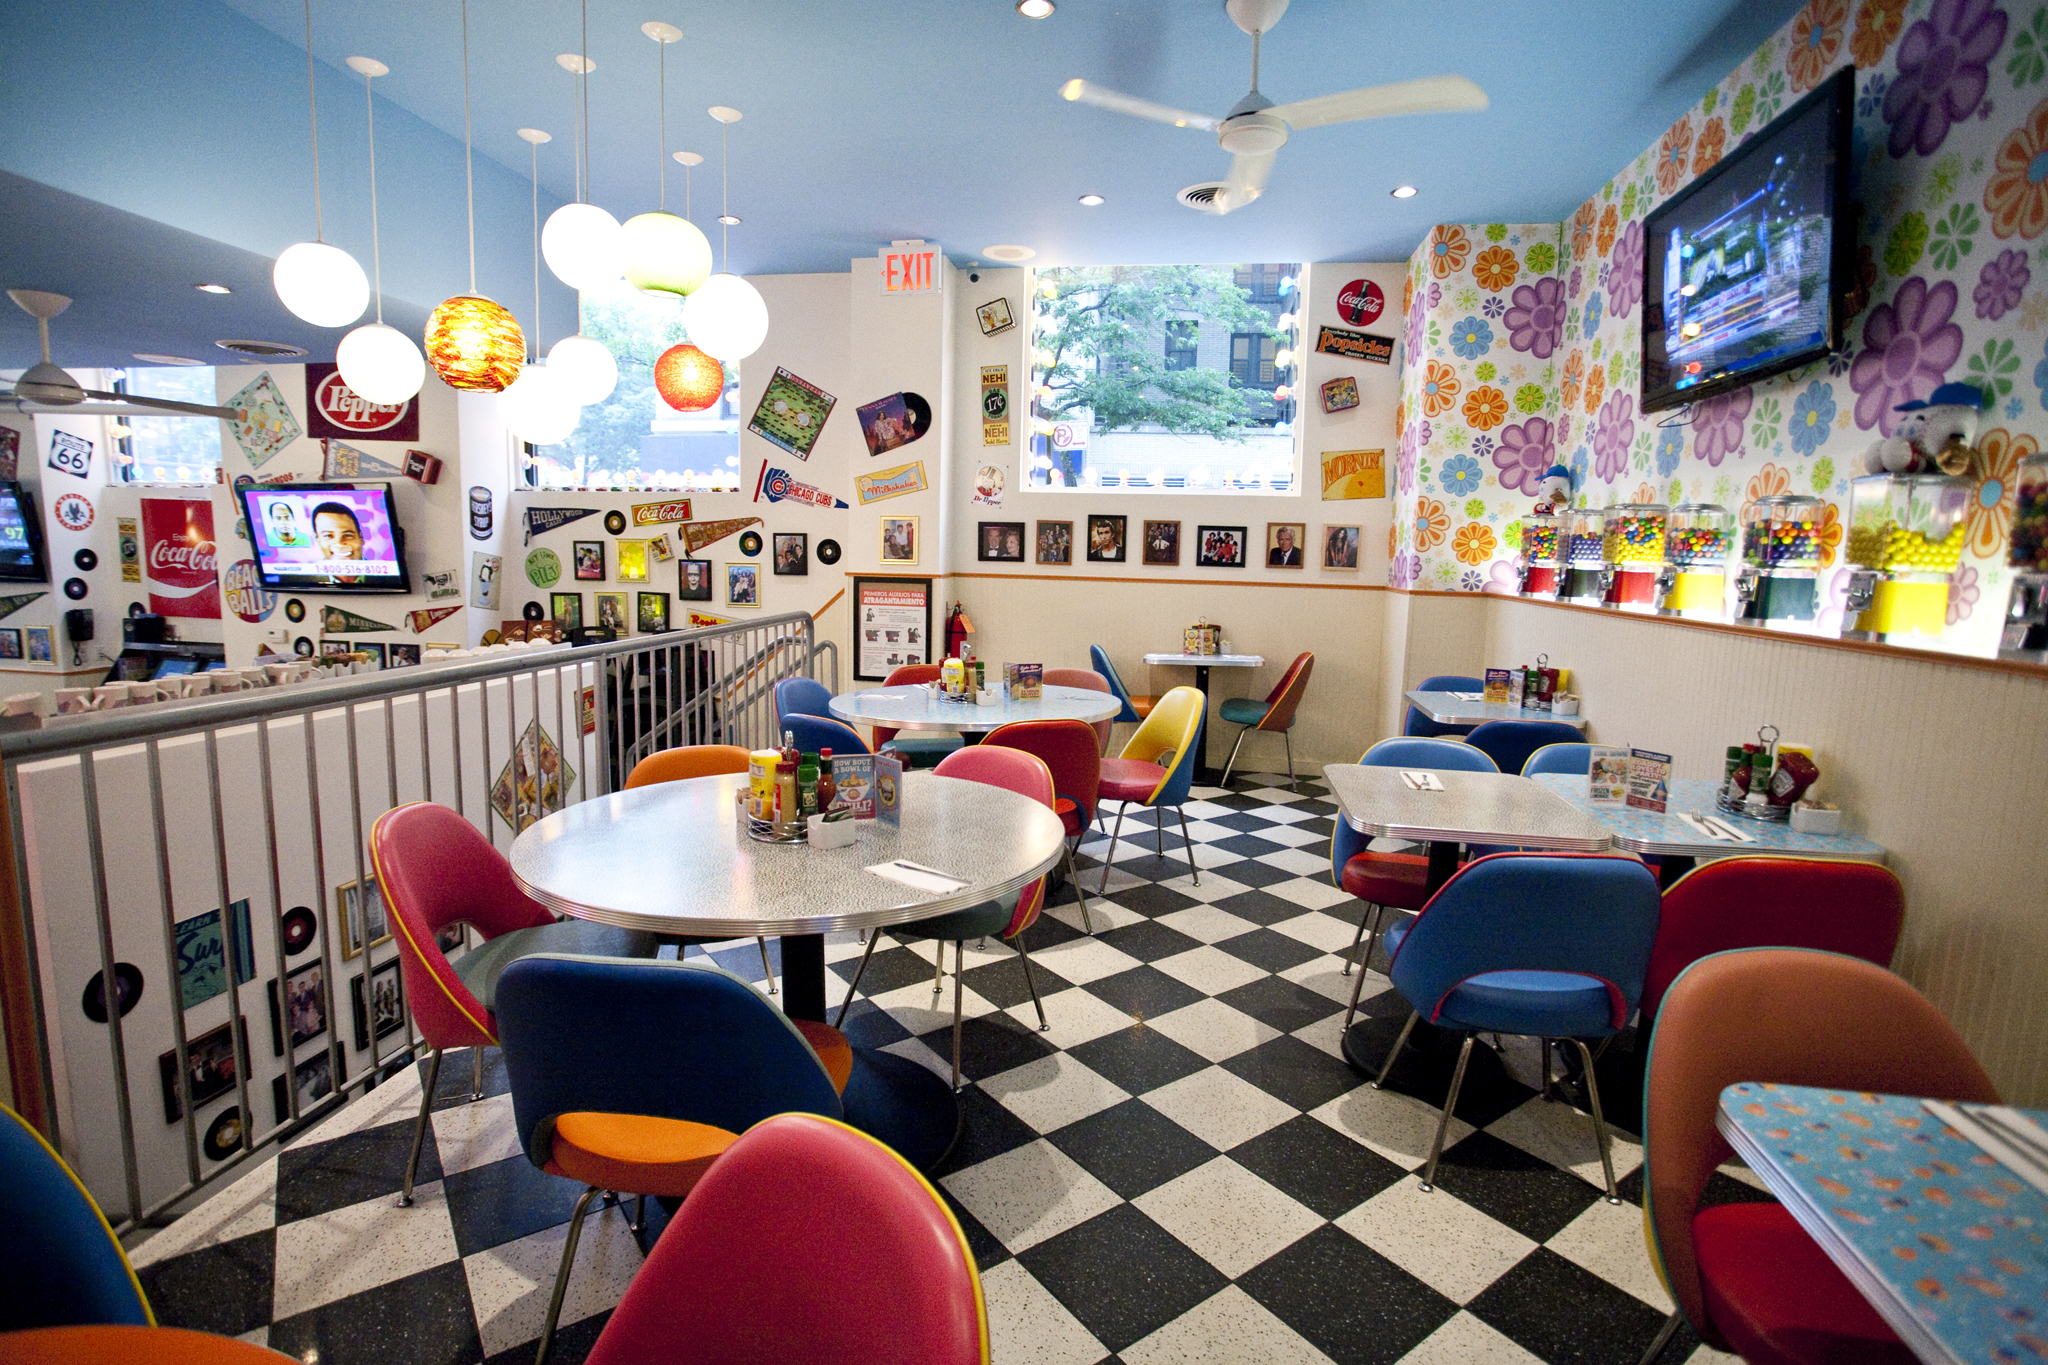 20 best fun restaurants in nyc for kids and families